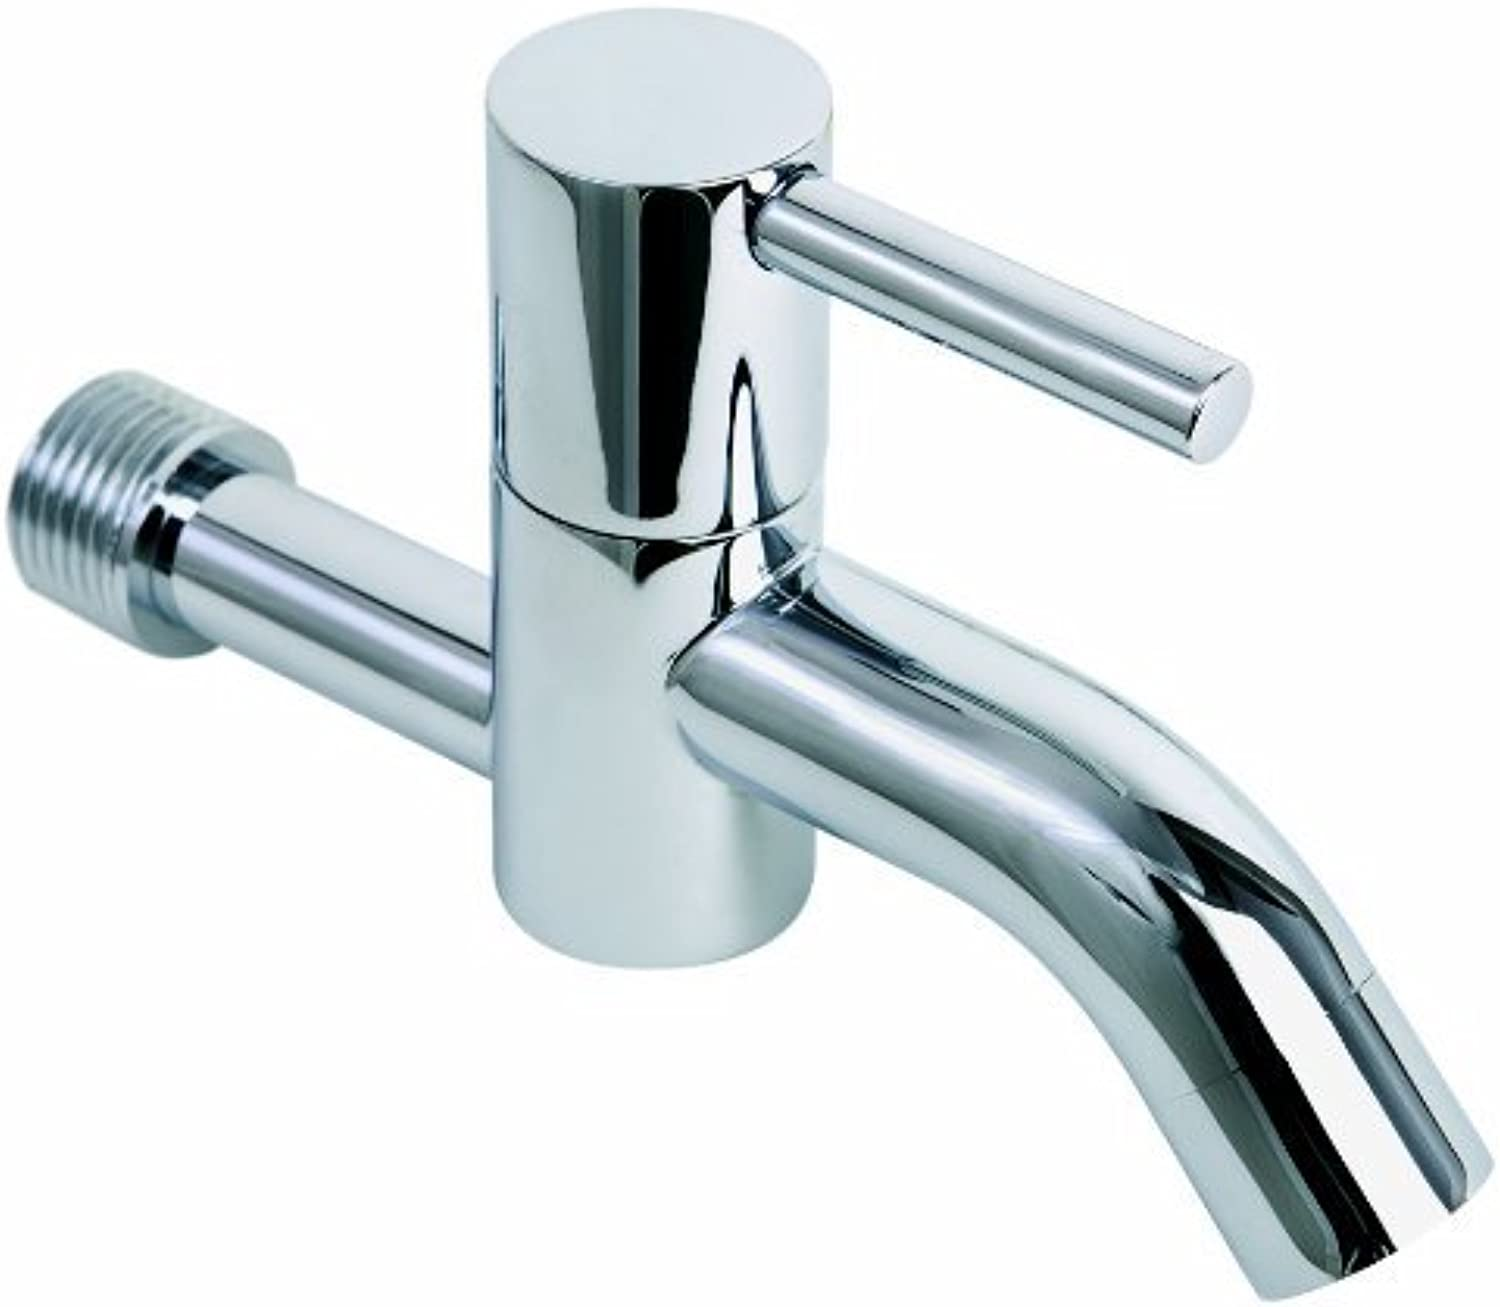 ADOB EW-Haustechnik Wall-Mounted Tap Fitting Round Solid Brass Chrome Plated, 40701